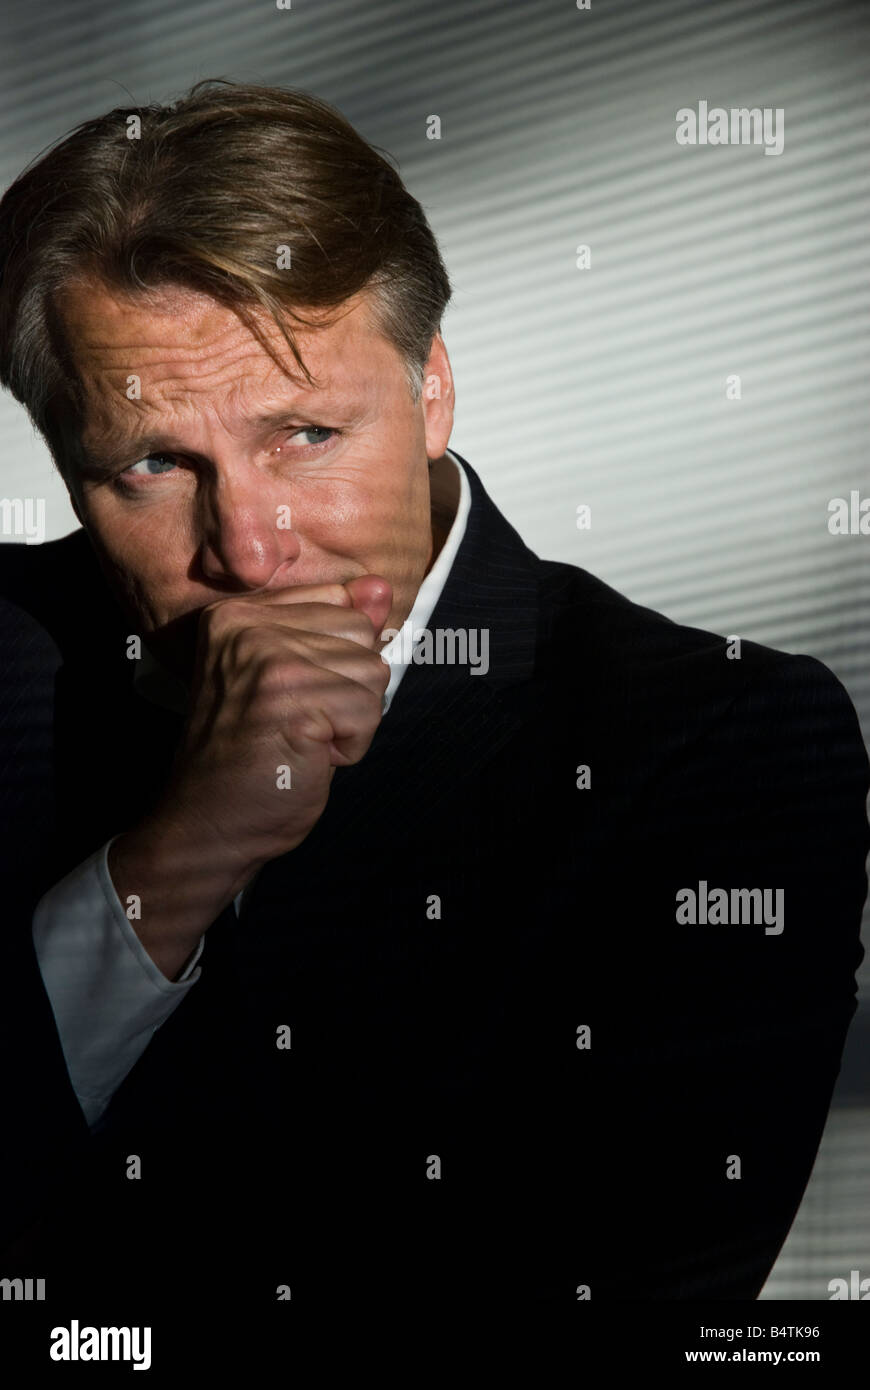 A depressed and desperate looking businessman holds back the tears after going bankrupt. - Stock Image